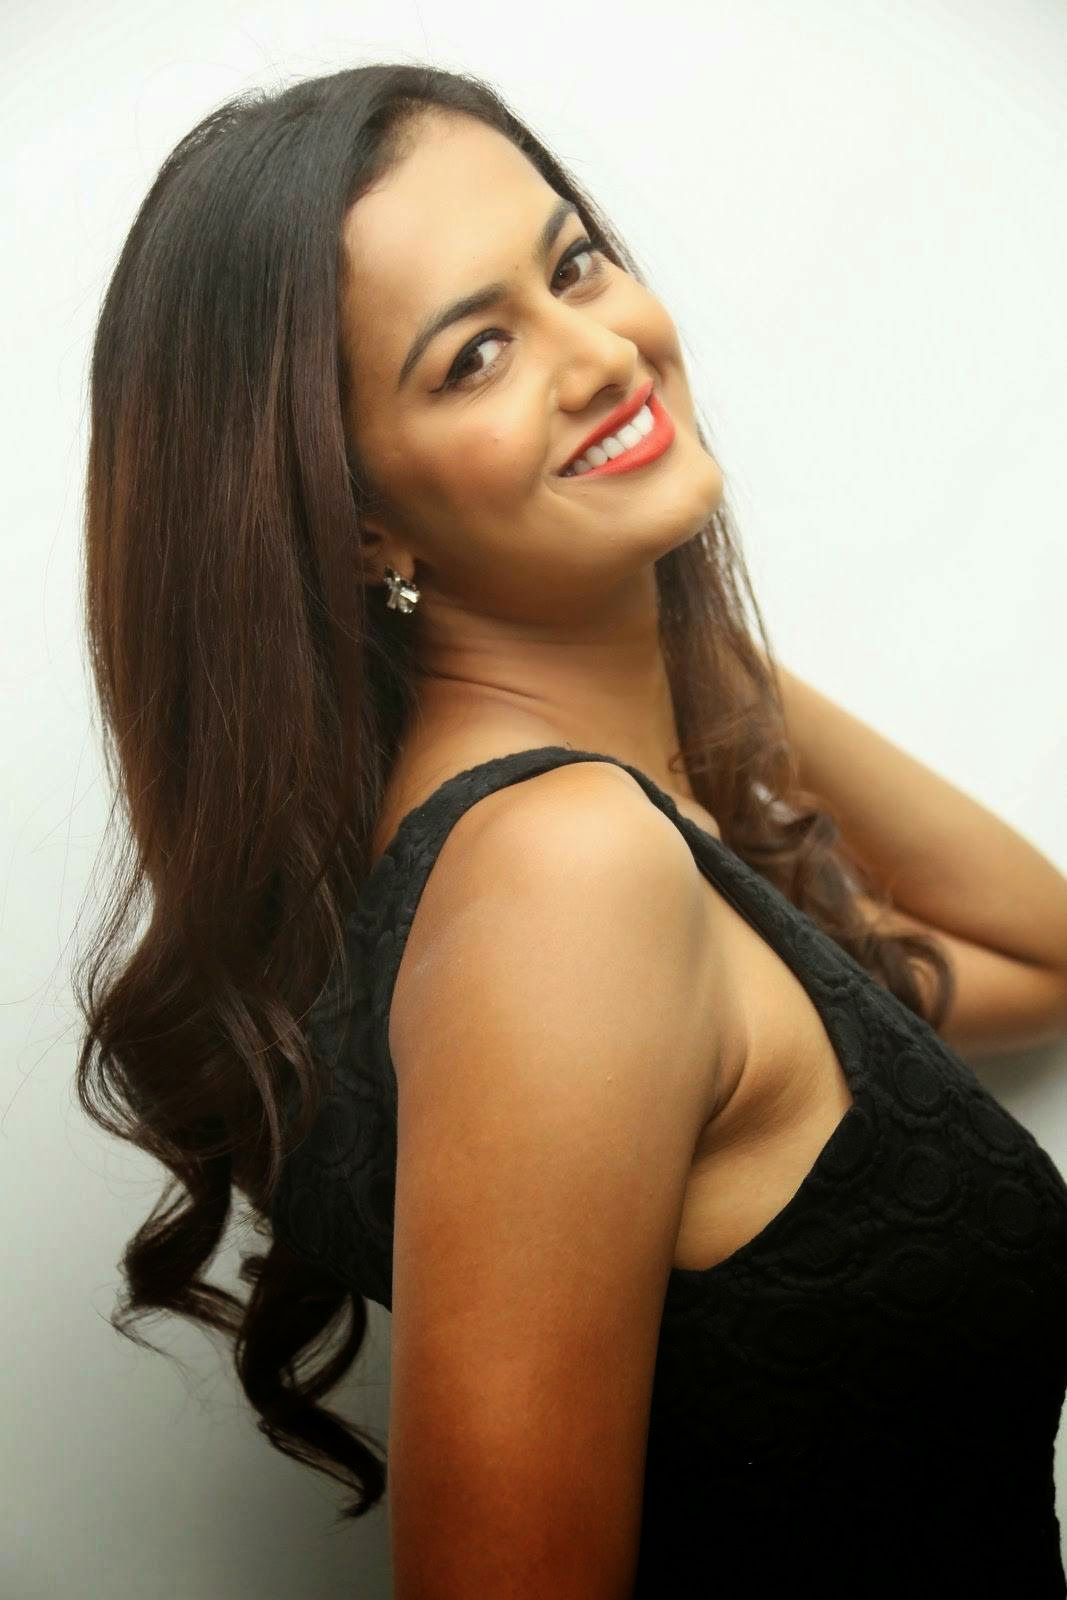 Actress Shubra Aiyappa images, Shubra Aiyappa Sexy Hot Figure images in Black Dress